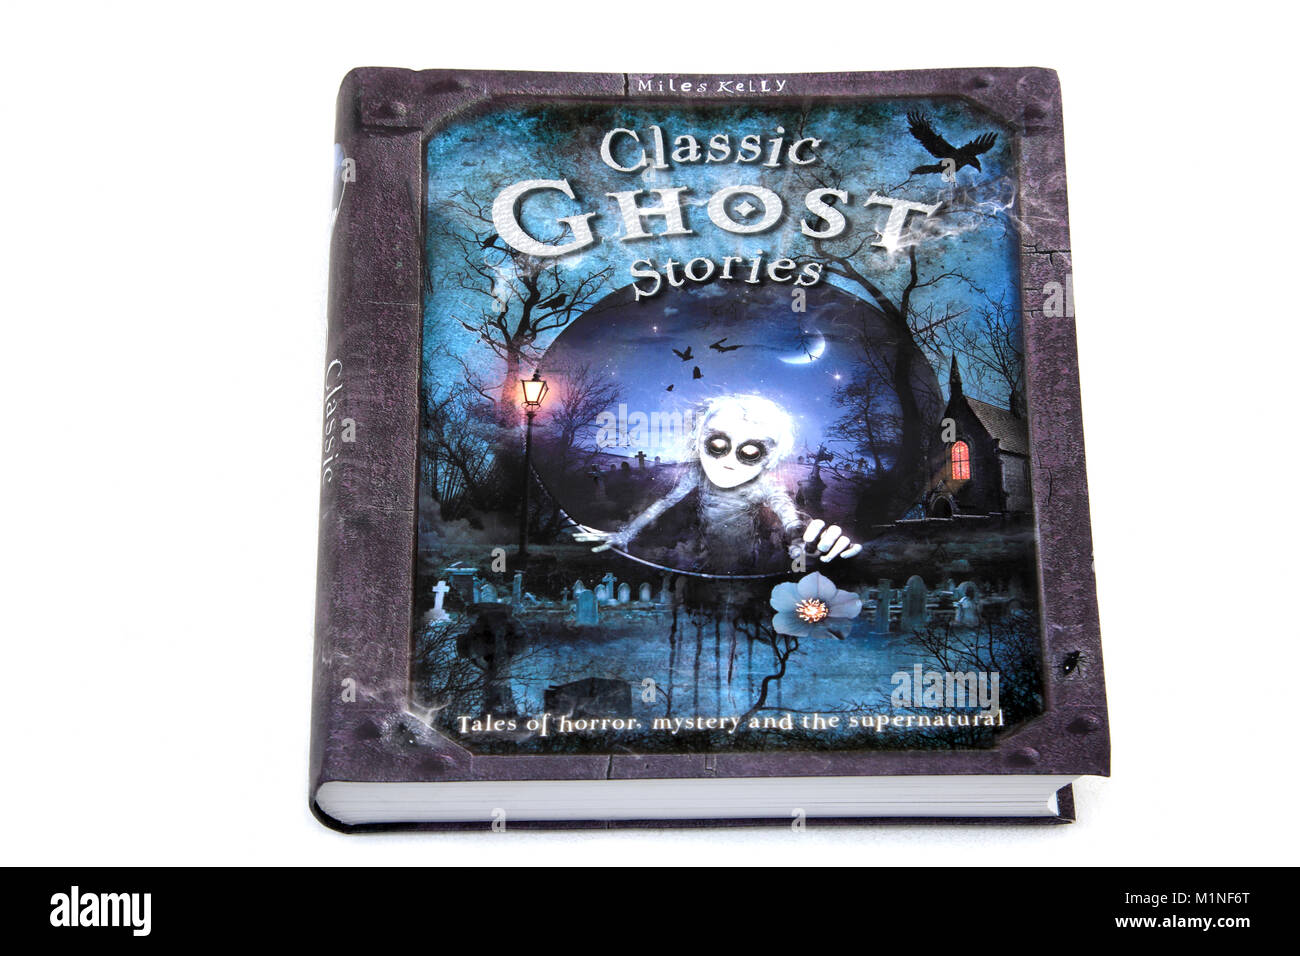 Hardback Book Classic Ghost Stories by Miles Kelly Stock Photo ...